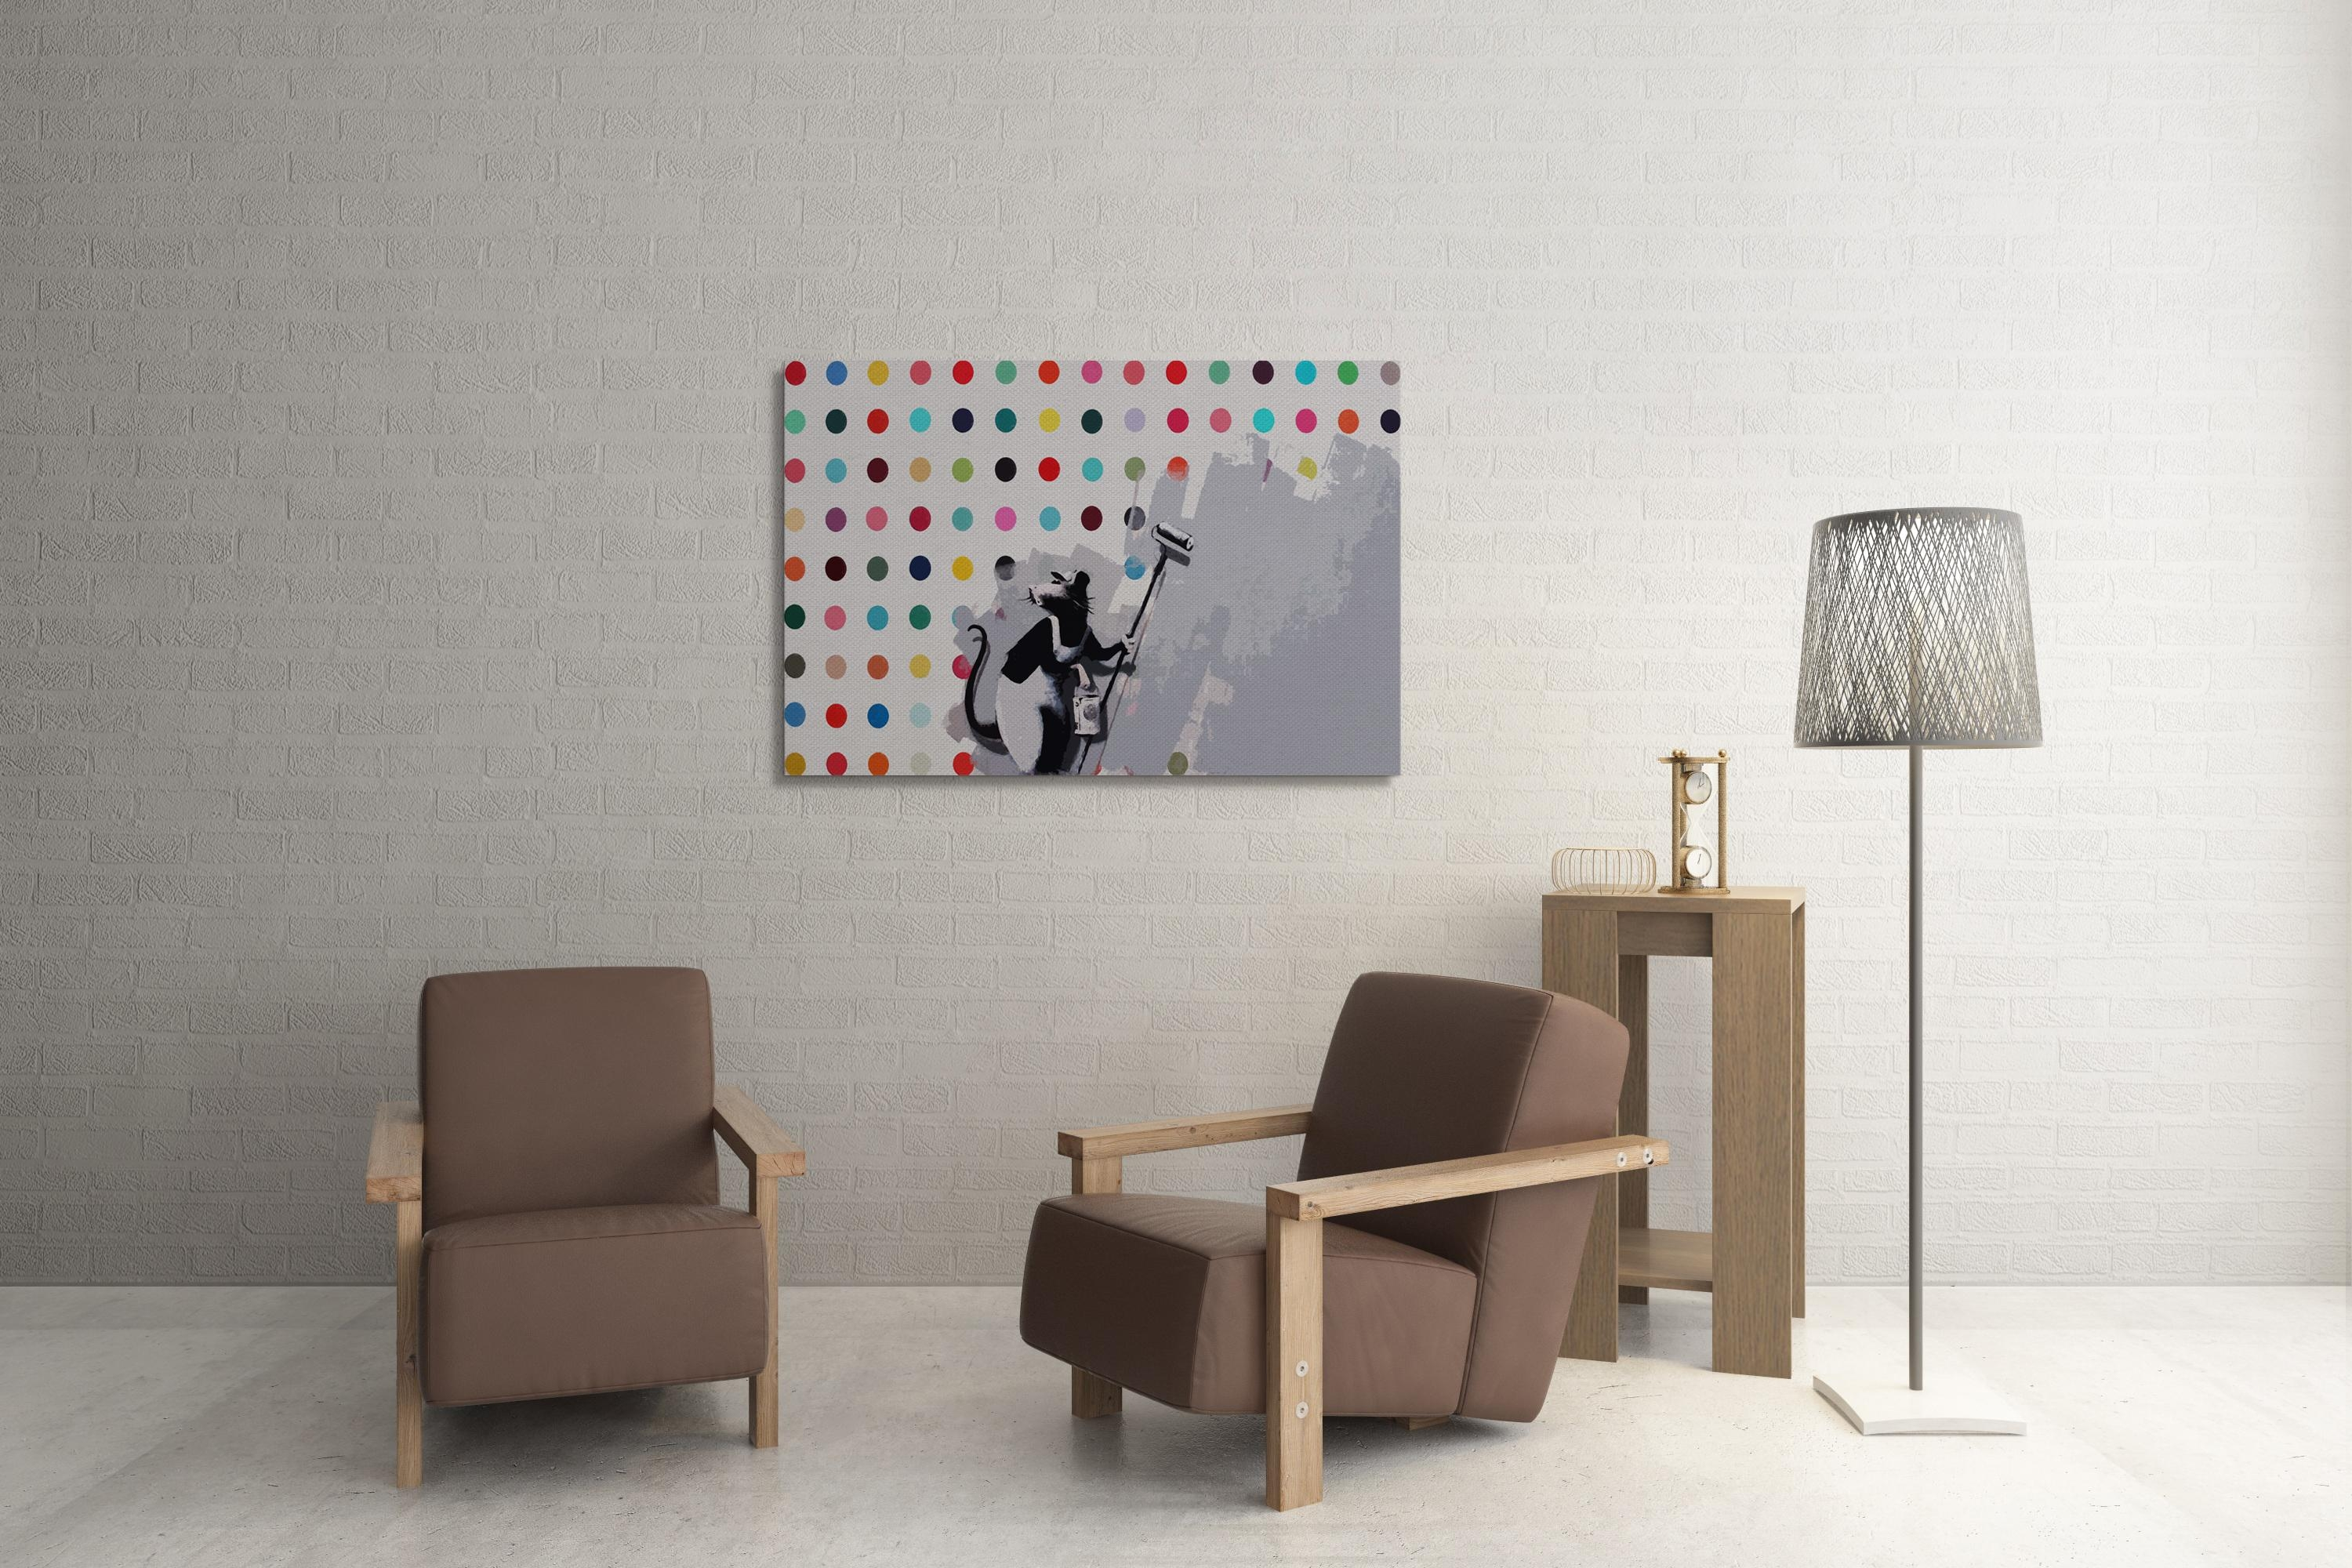 Banksy Dots Rat Canvas Wall Art Intended For Banksy Wall Art Canvas (Image 9 of 20)